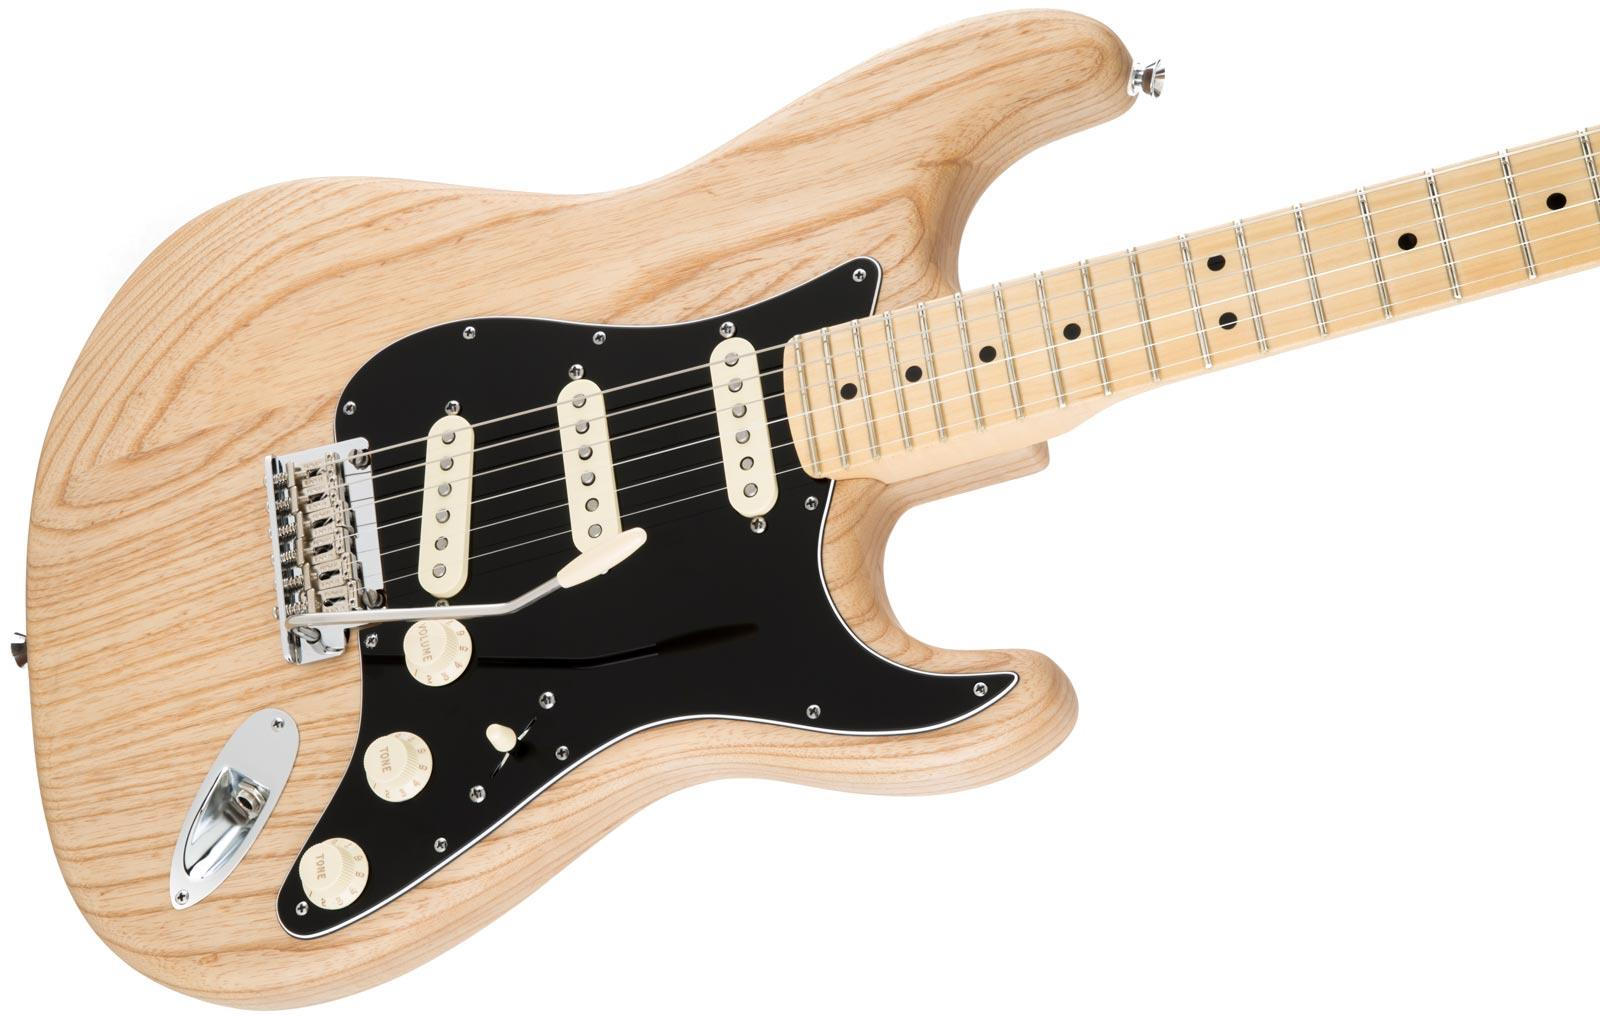 Fender American Standard Stratocaster Oiled Ash Limited